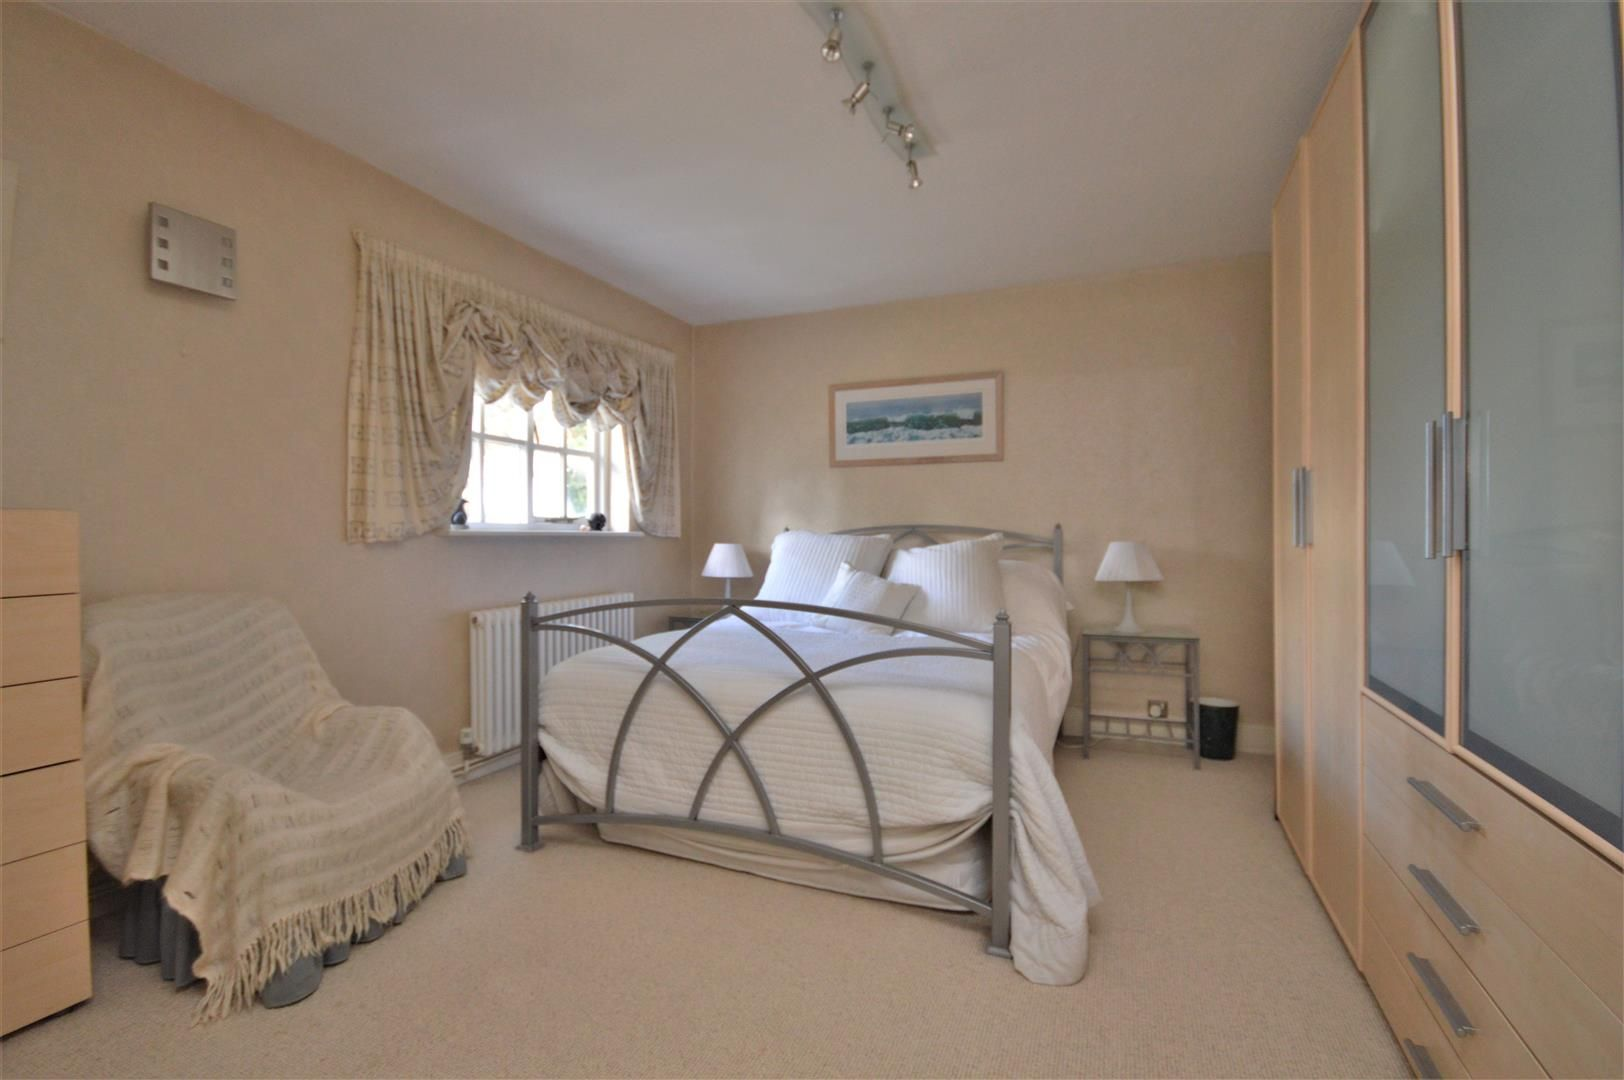 5 bed detached for sale in Stretton Sugwas  - Property Image 23